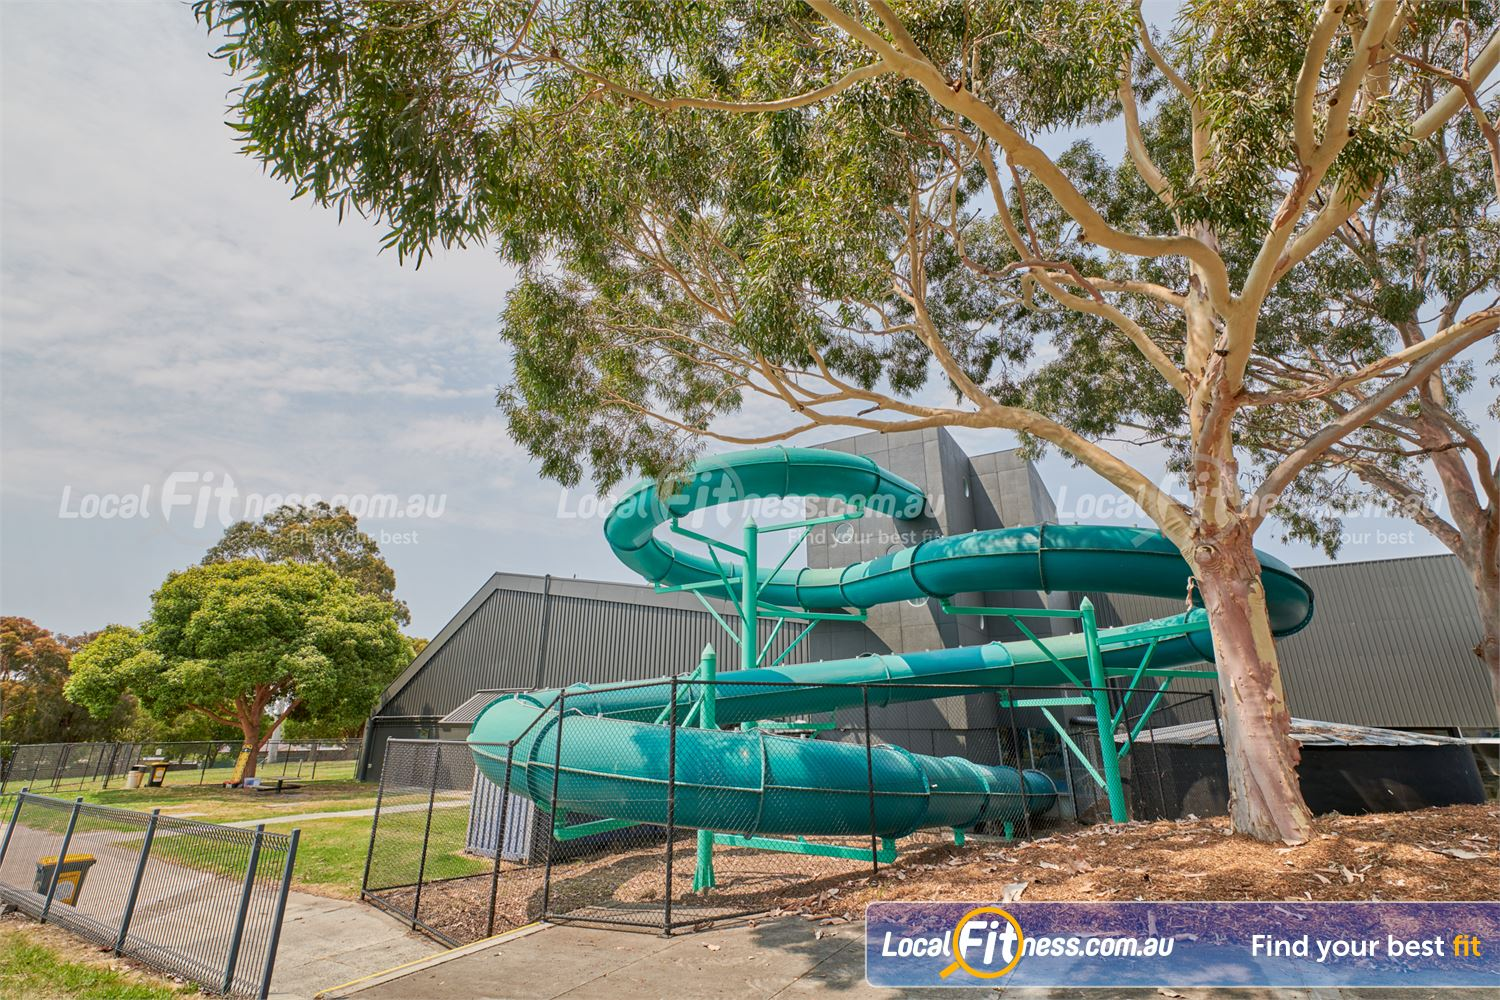 Knox Leisureworks Near Ferntree Gully The Knox Leisureworks 80-metre waterslide is open all year round.